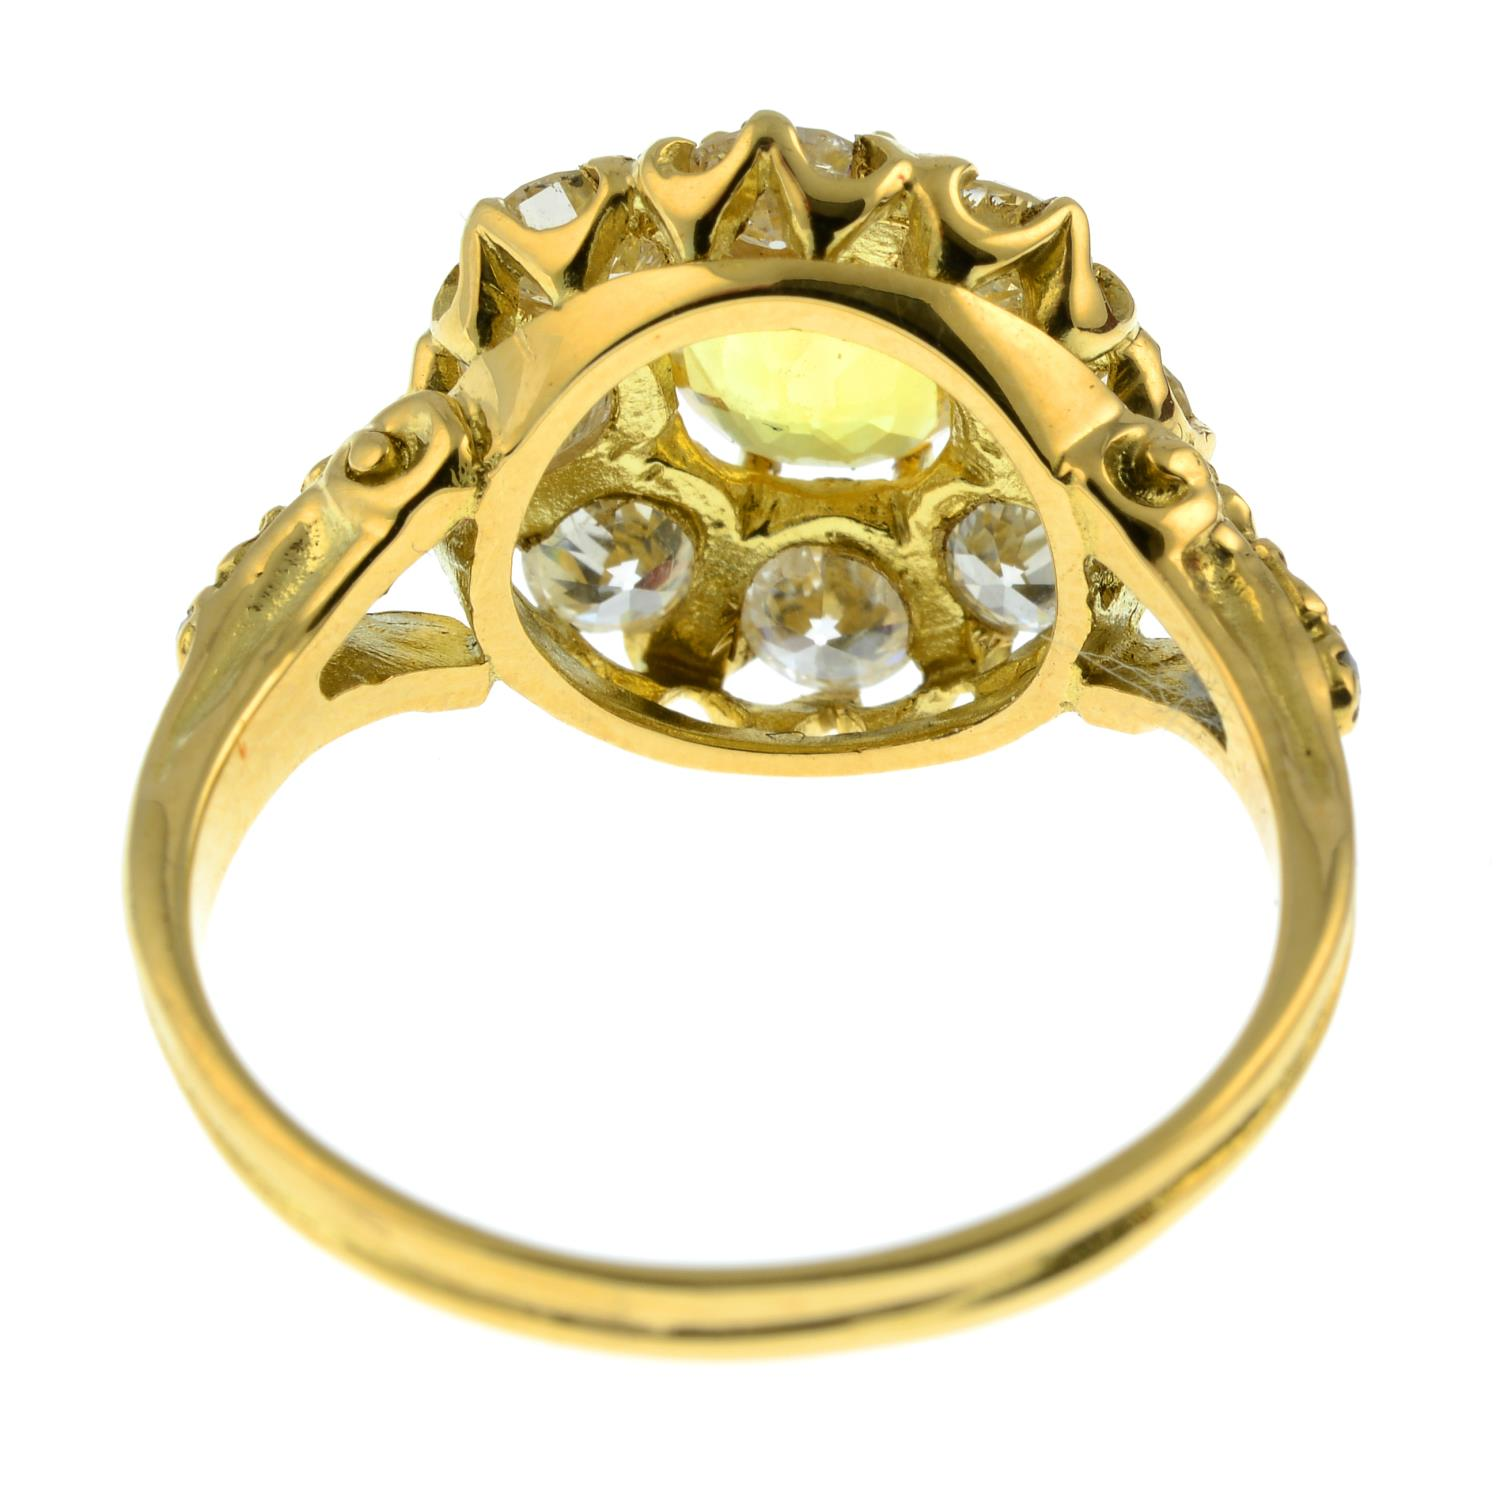 A yellow sapphire and old-cut diamond cluster ring.Sapphire calculated weight 1.05cts, - Image 5 of 6